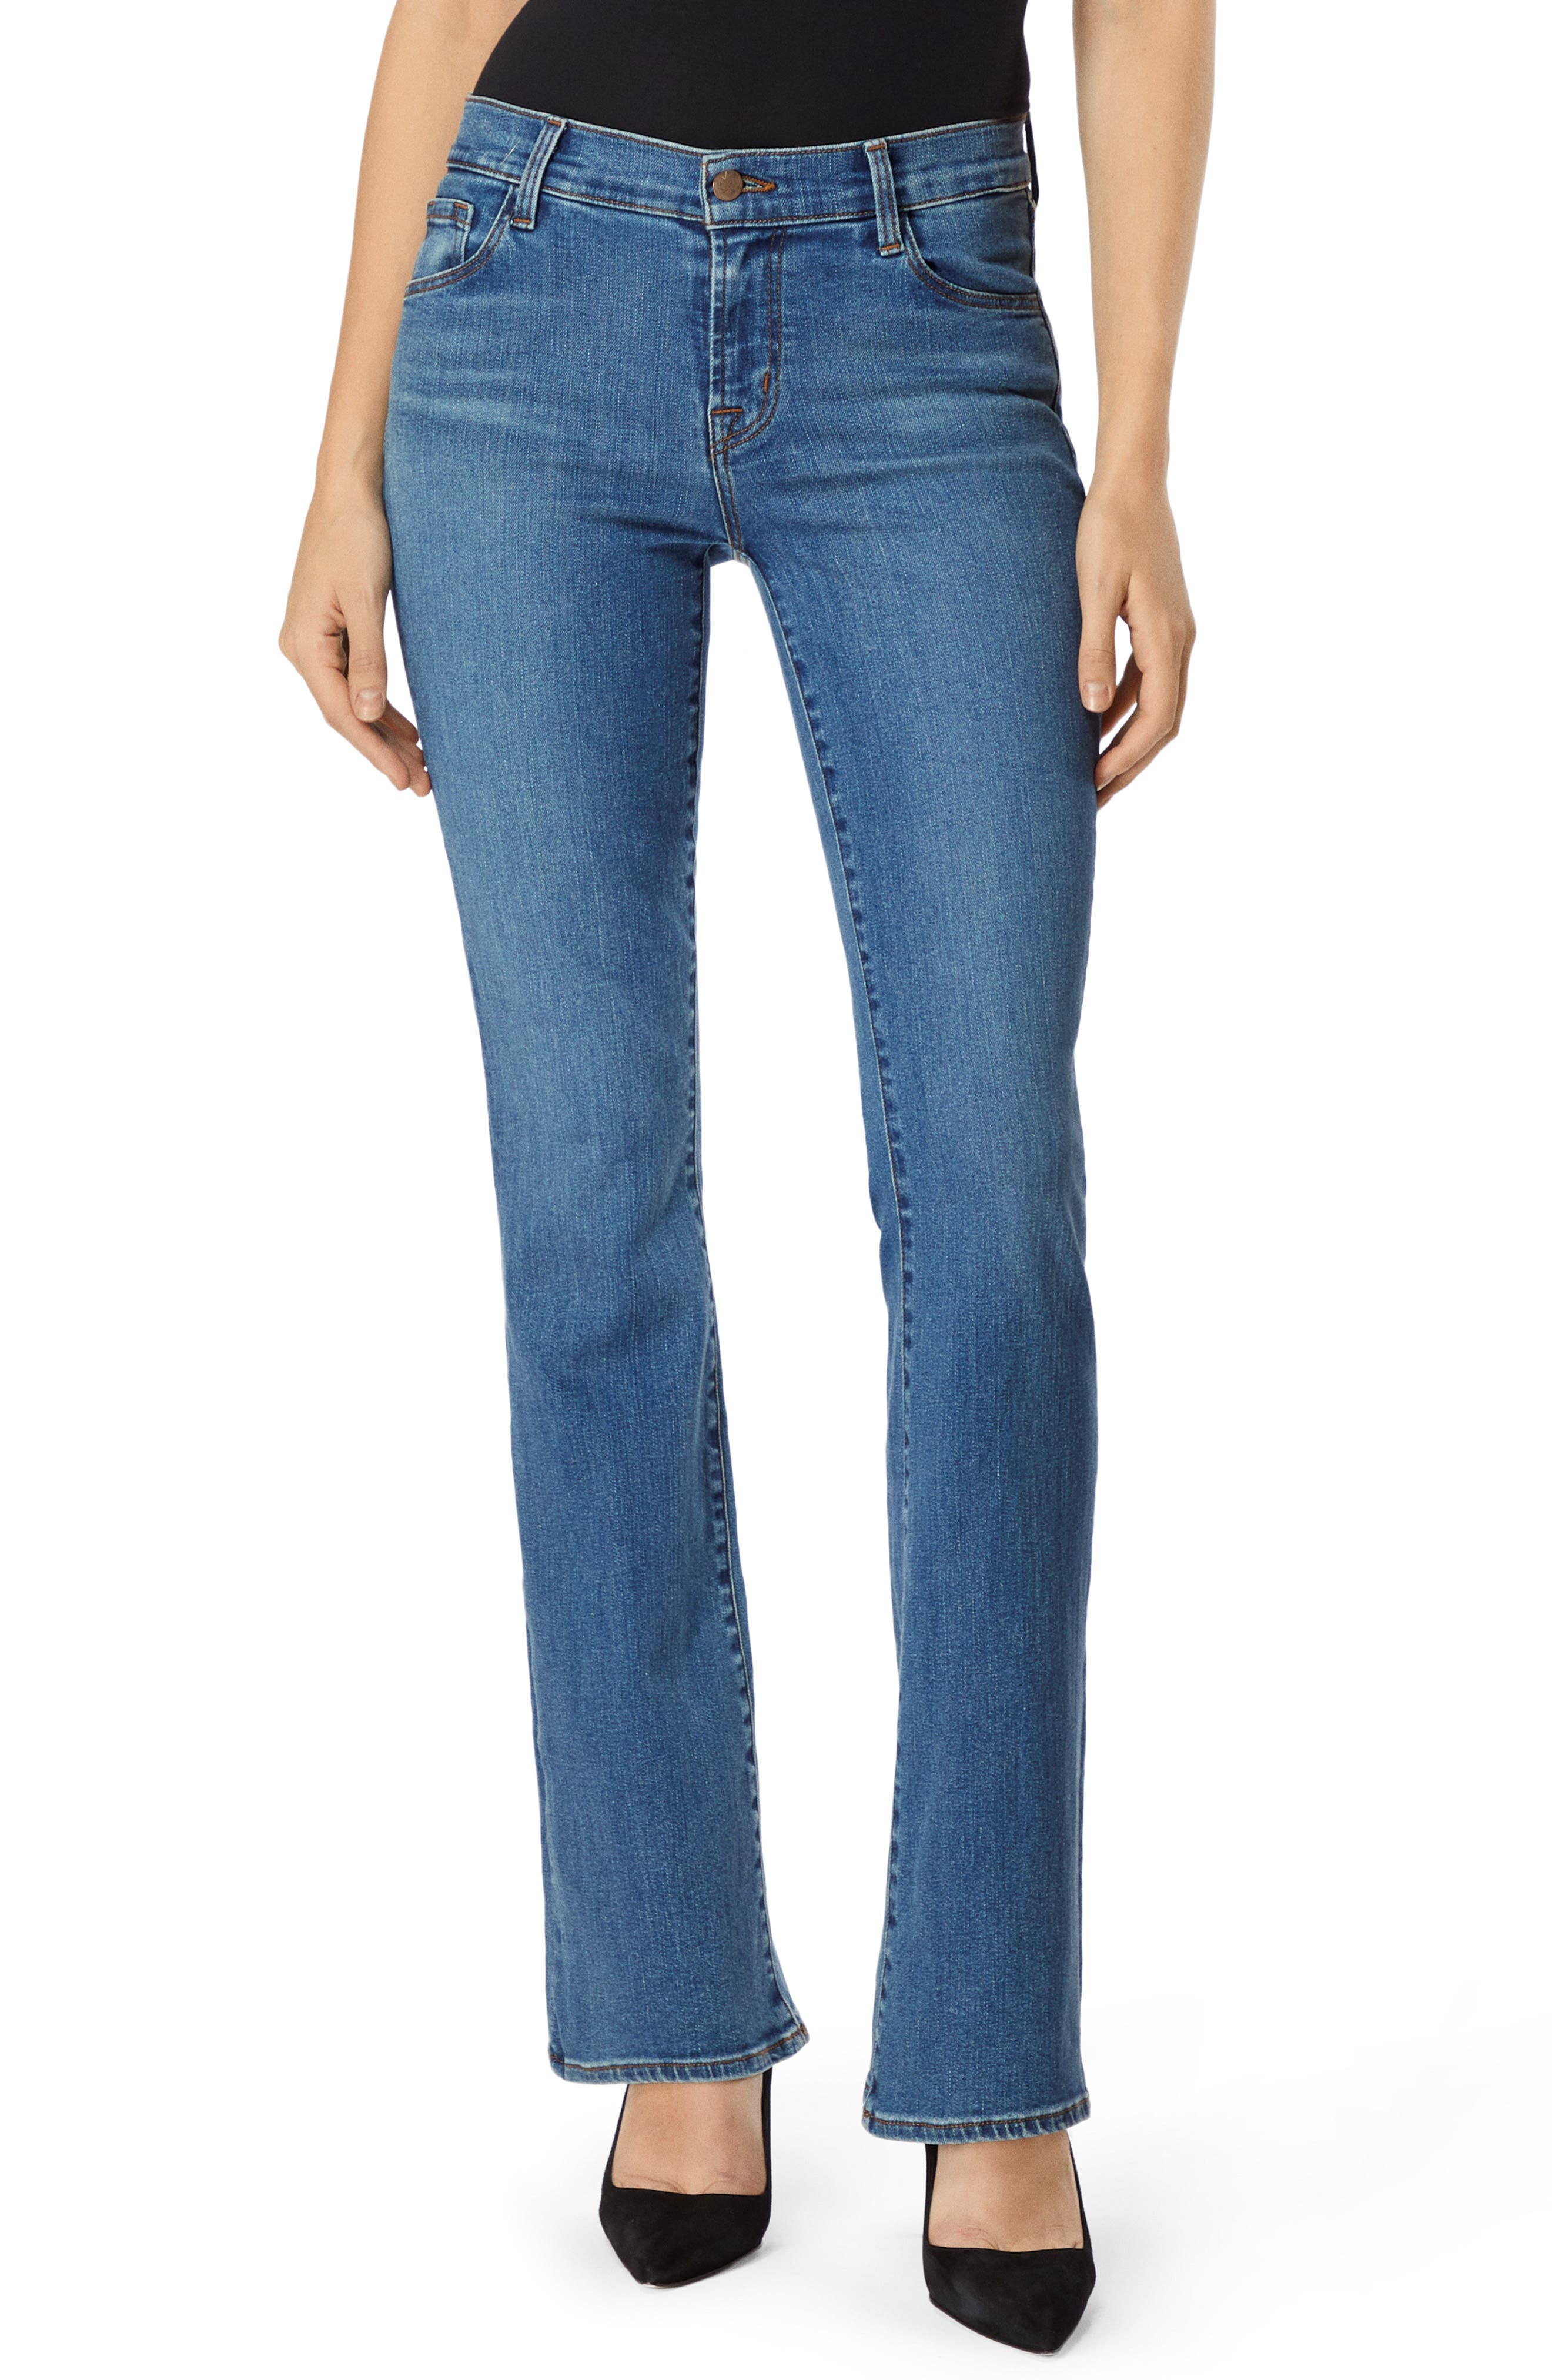 Selena 32 Mid Rise Bootcut Jeans In Lovesick